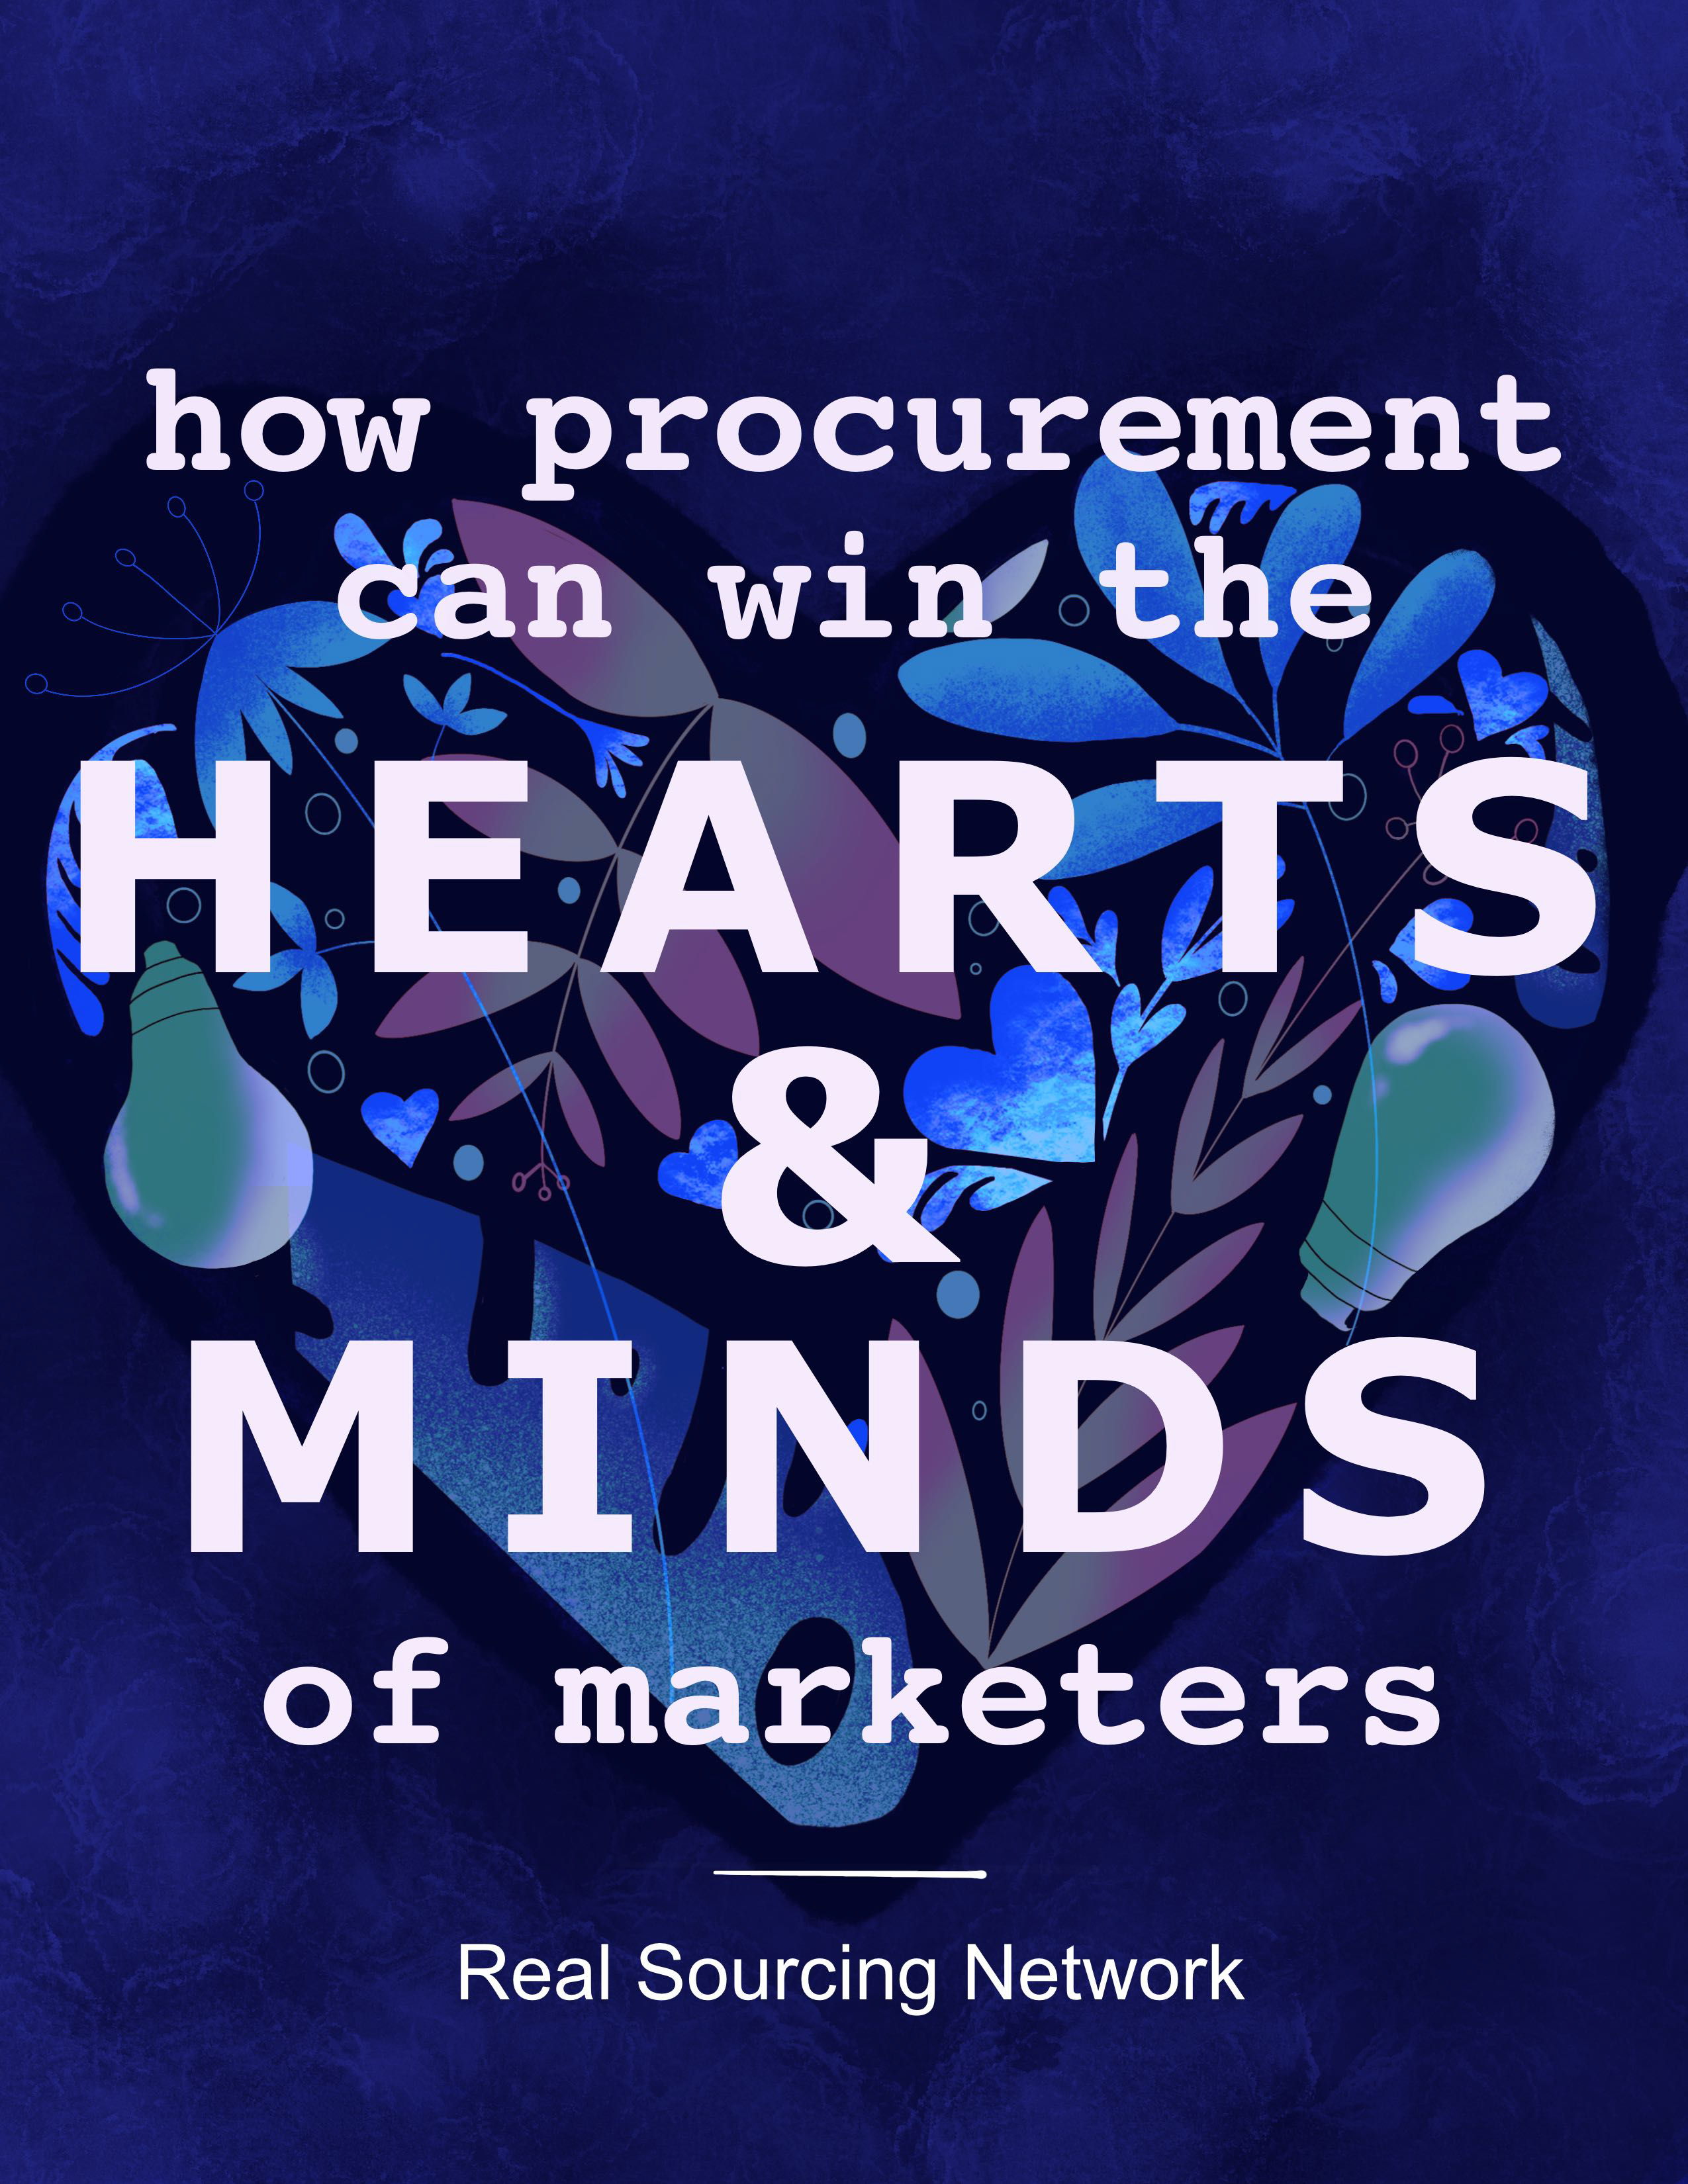 How Procurement Can Win the Hearts & Minds of Marketers